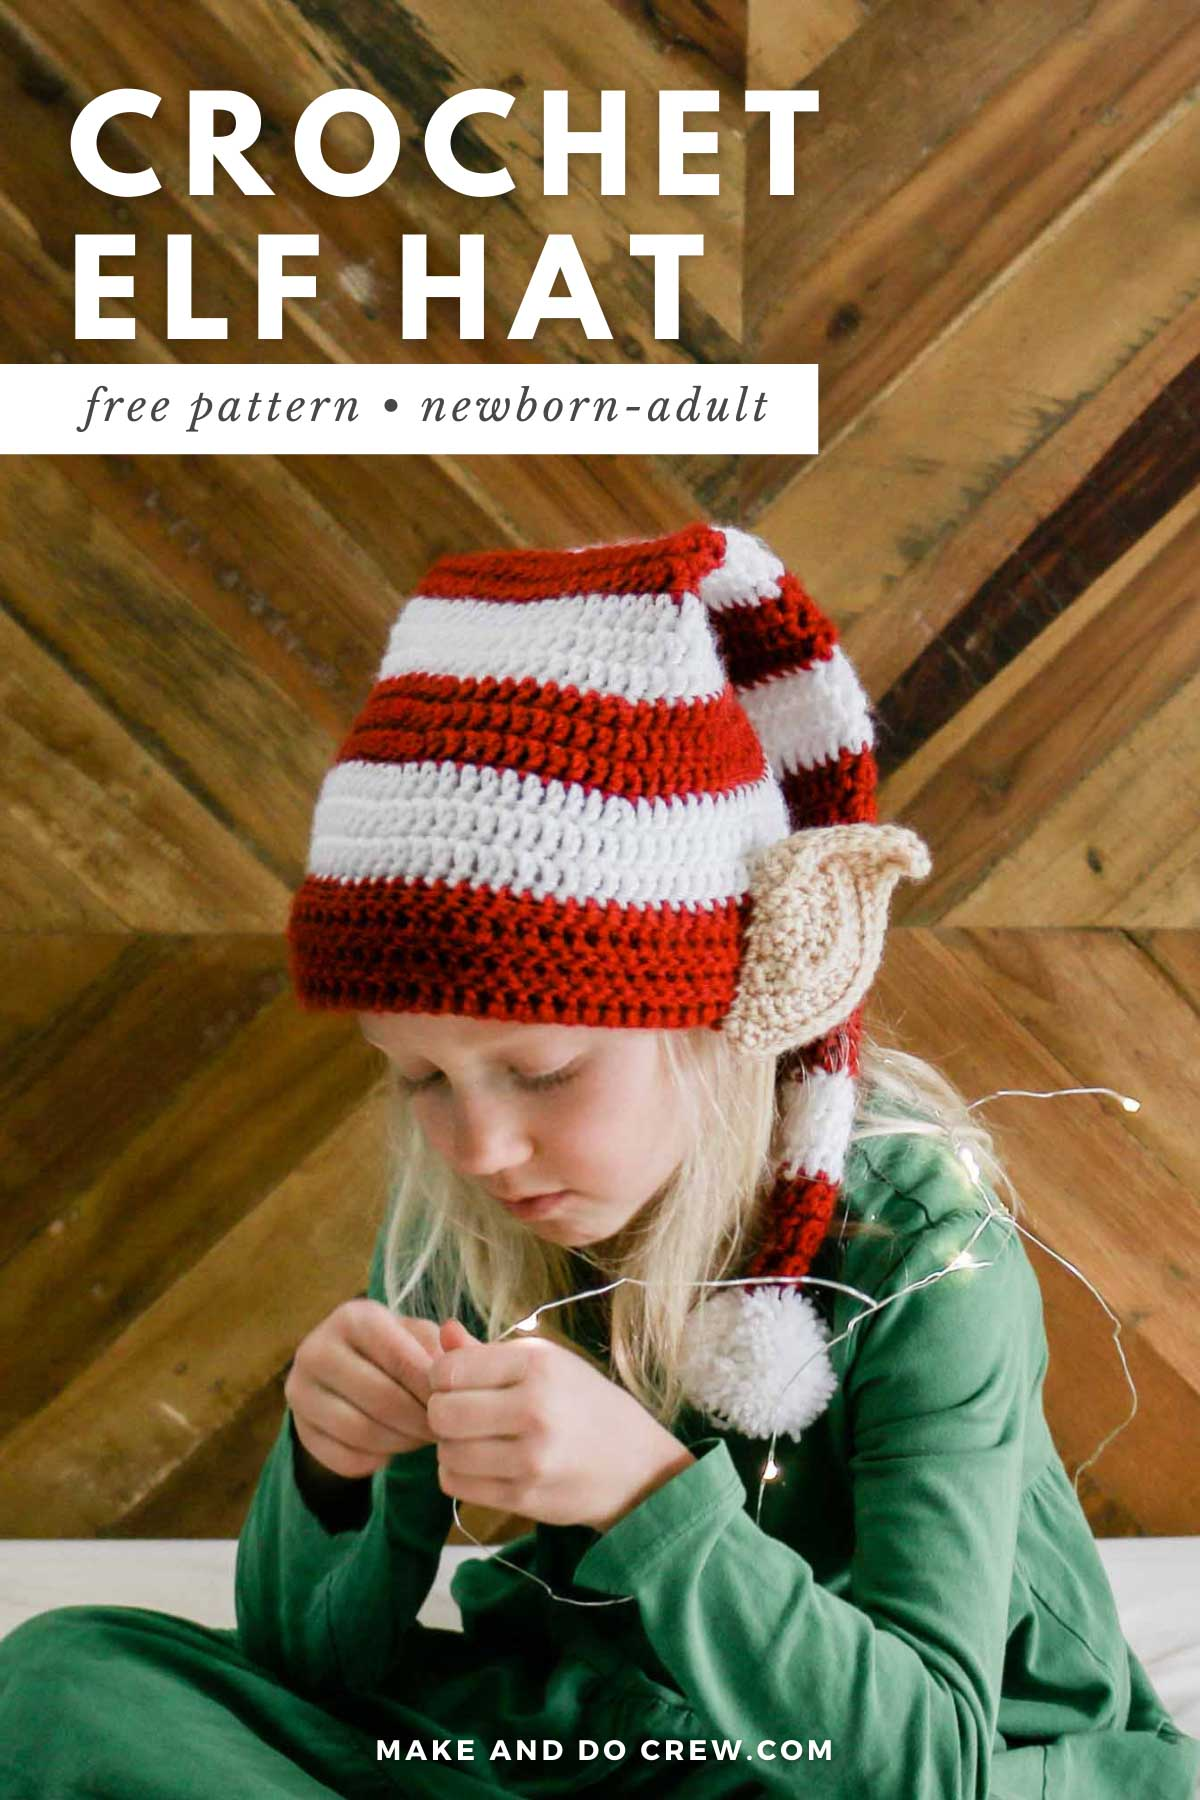 A girl wearing a crocheted Santa's elf hat with realistic looking crocheted ears.